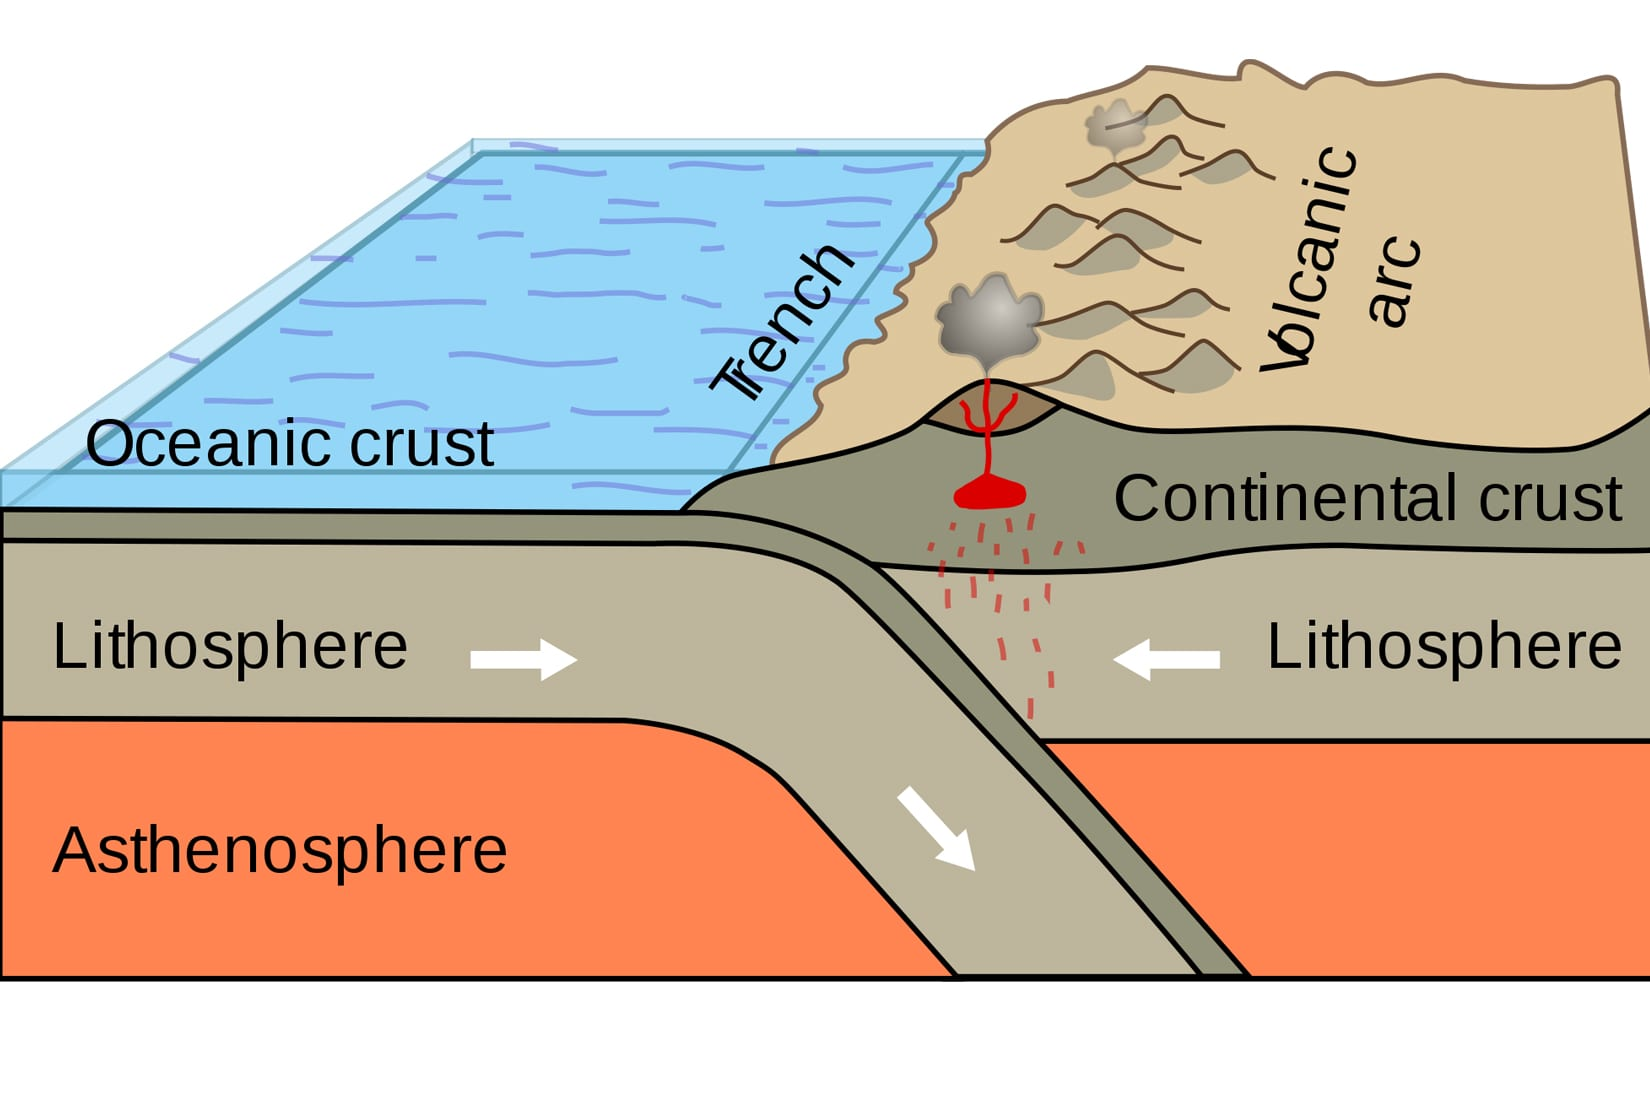 A schematic illustration of plate subduction beneath a continental arc. (Image courtesy of Booyabazooka/Wikimedia Commons)